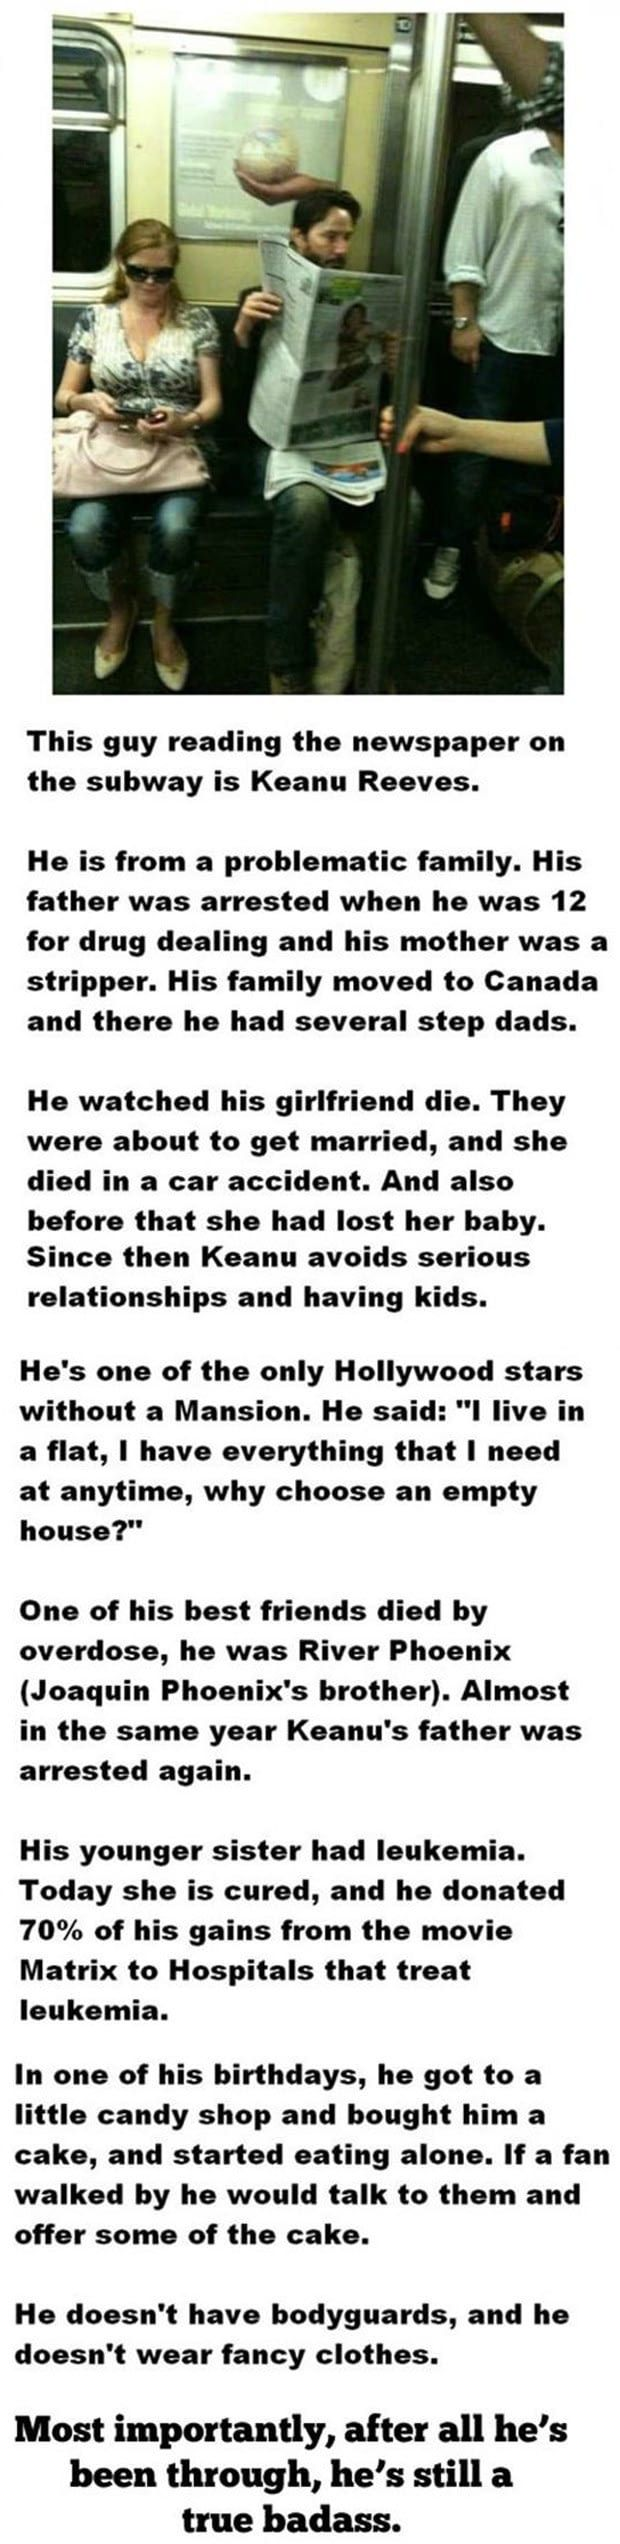 A story about Keanu Reeves